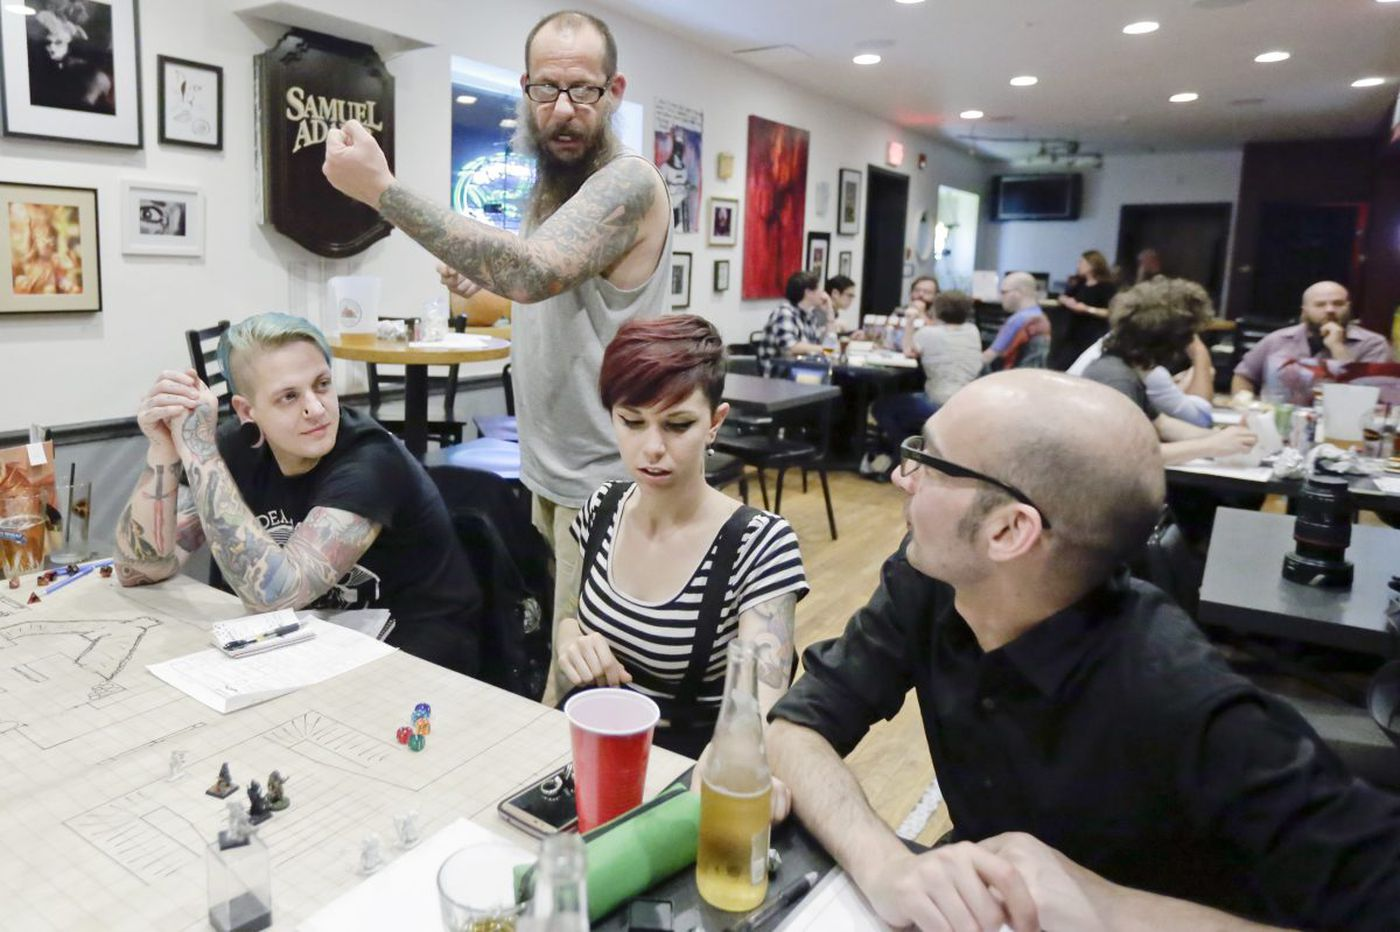 Philly hipsters are playing Dungeons & Dragons, as old becomes new